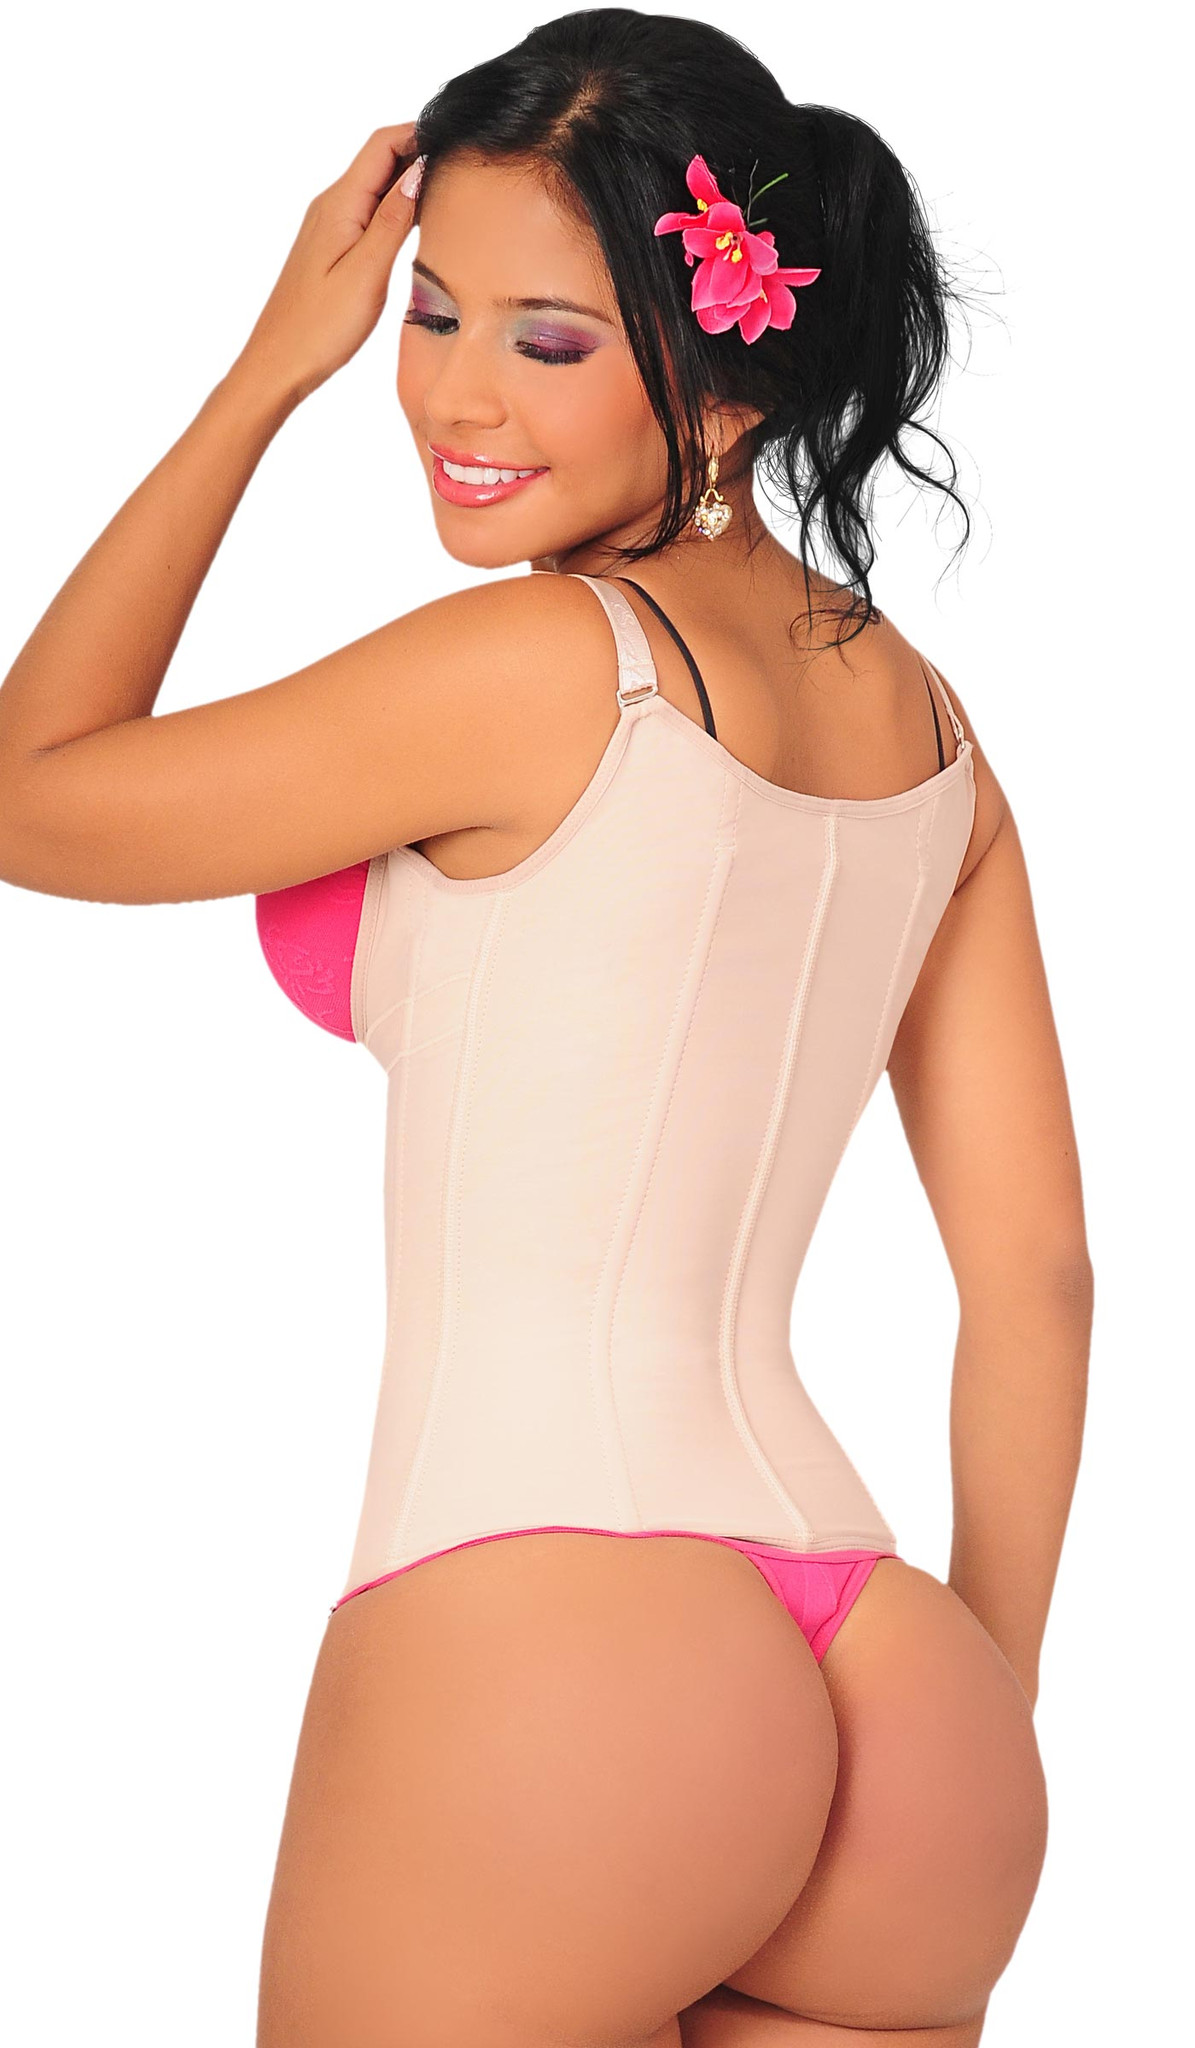 f9041918ec5 SALOME 0313 POWERNET VEST WITH REMOVABLE STRAPS   ZIPPER - Svelte ...